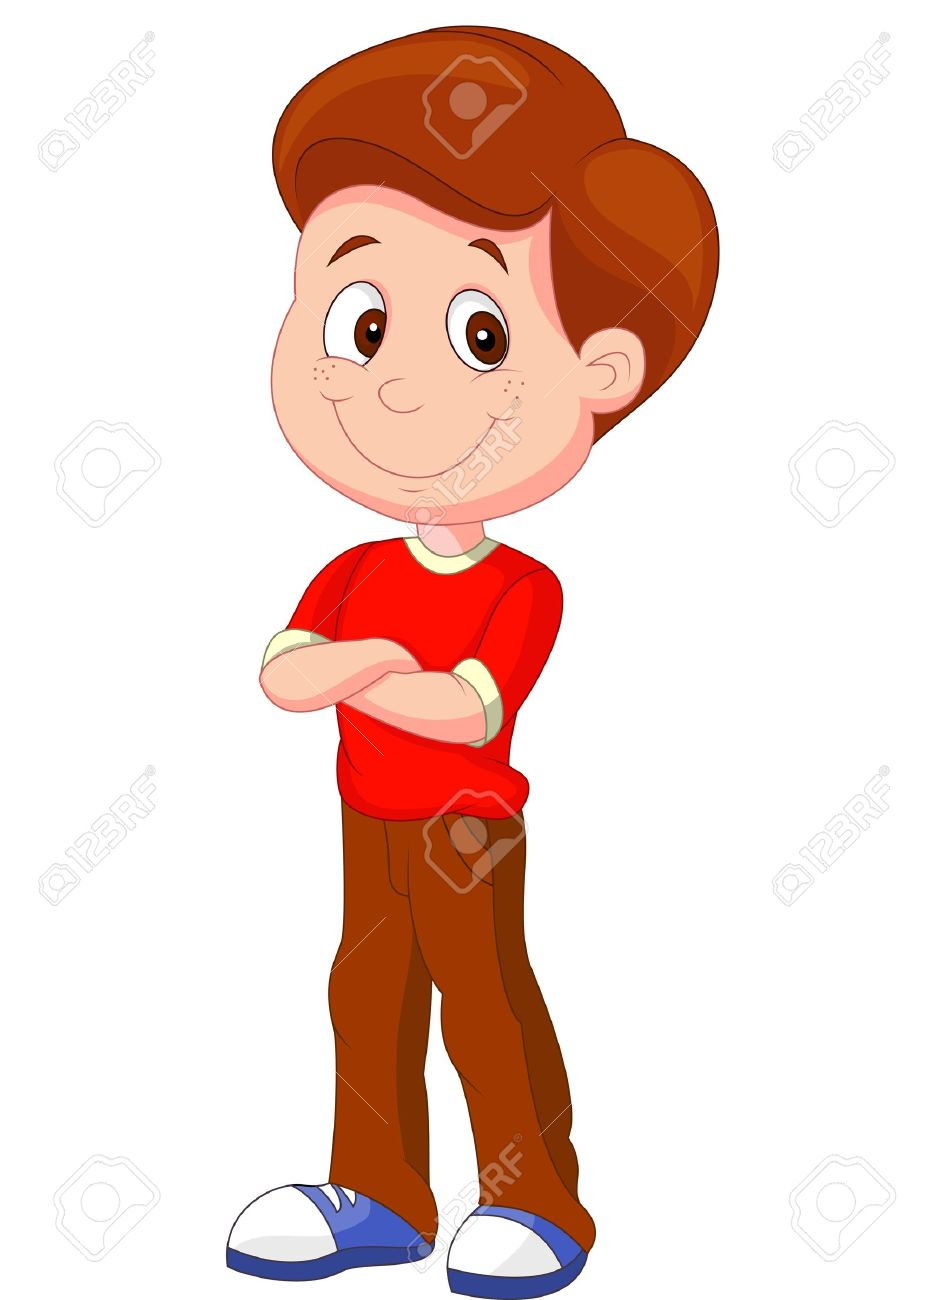 Cute Boy Cartoon Standing Royalty Free Cliparts Vectors And Stock